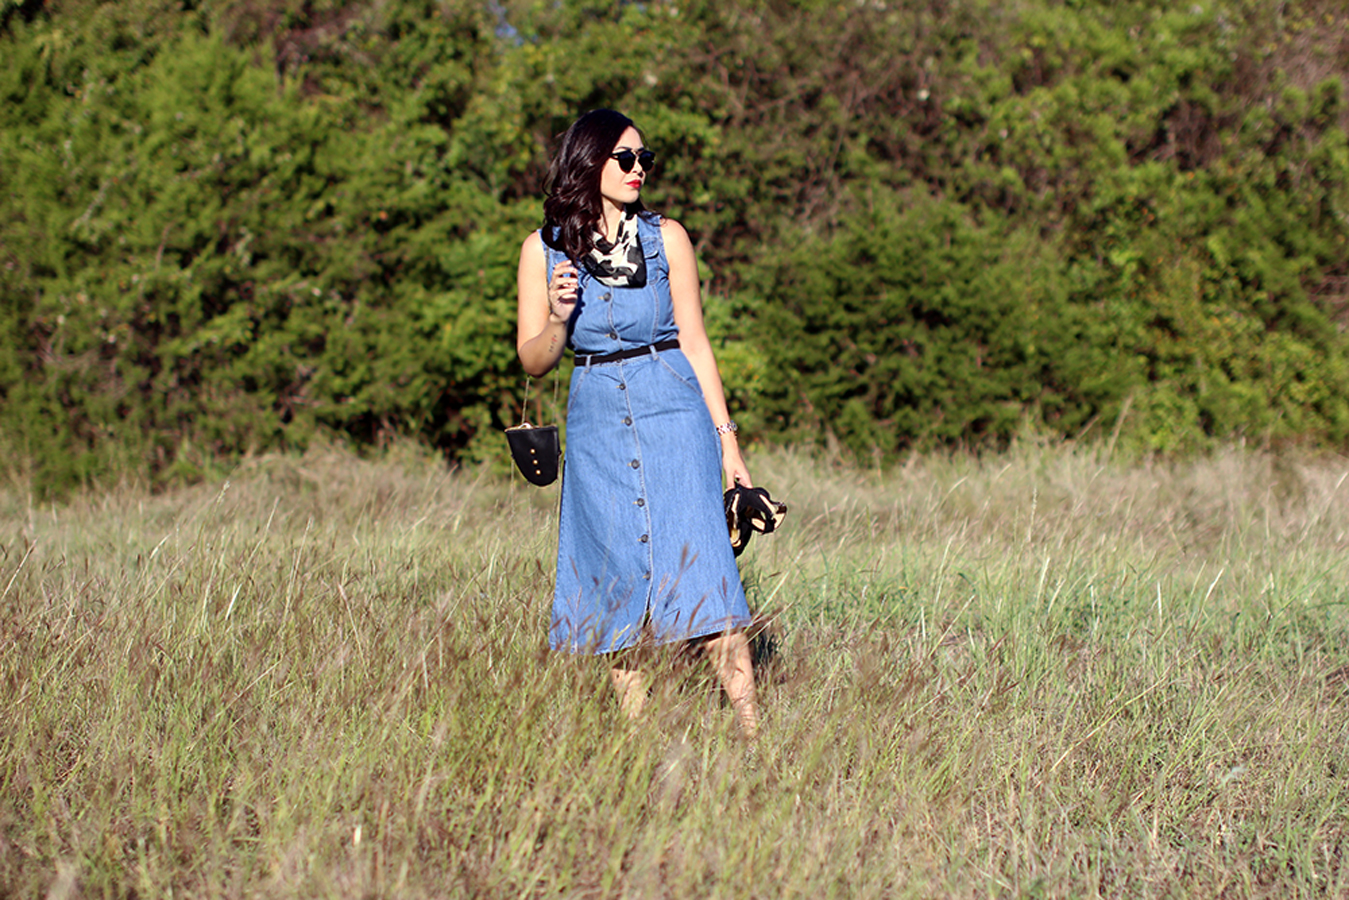 FIXIN-TO-THRILL-PINK-SILVER-FASHION-DENIM-DRESS-STRAPPY-HEELS-TREND-FALL-OCTOBER-ATX-AUSTIN-STYLE-BLOG-FW15-TRENDY-CHIC-GLAM-TEXAS-7